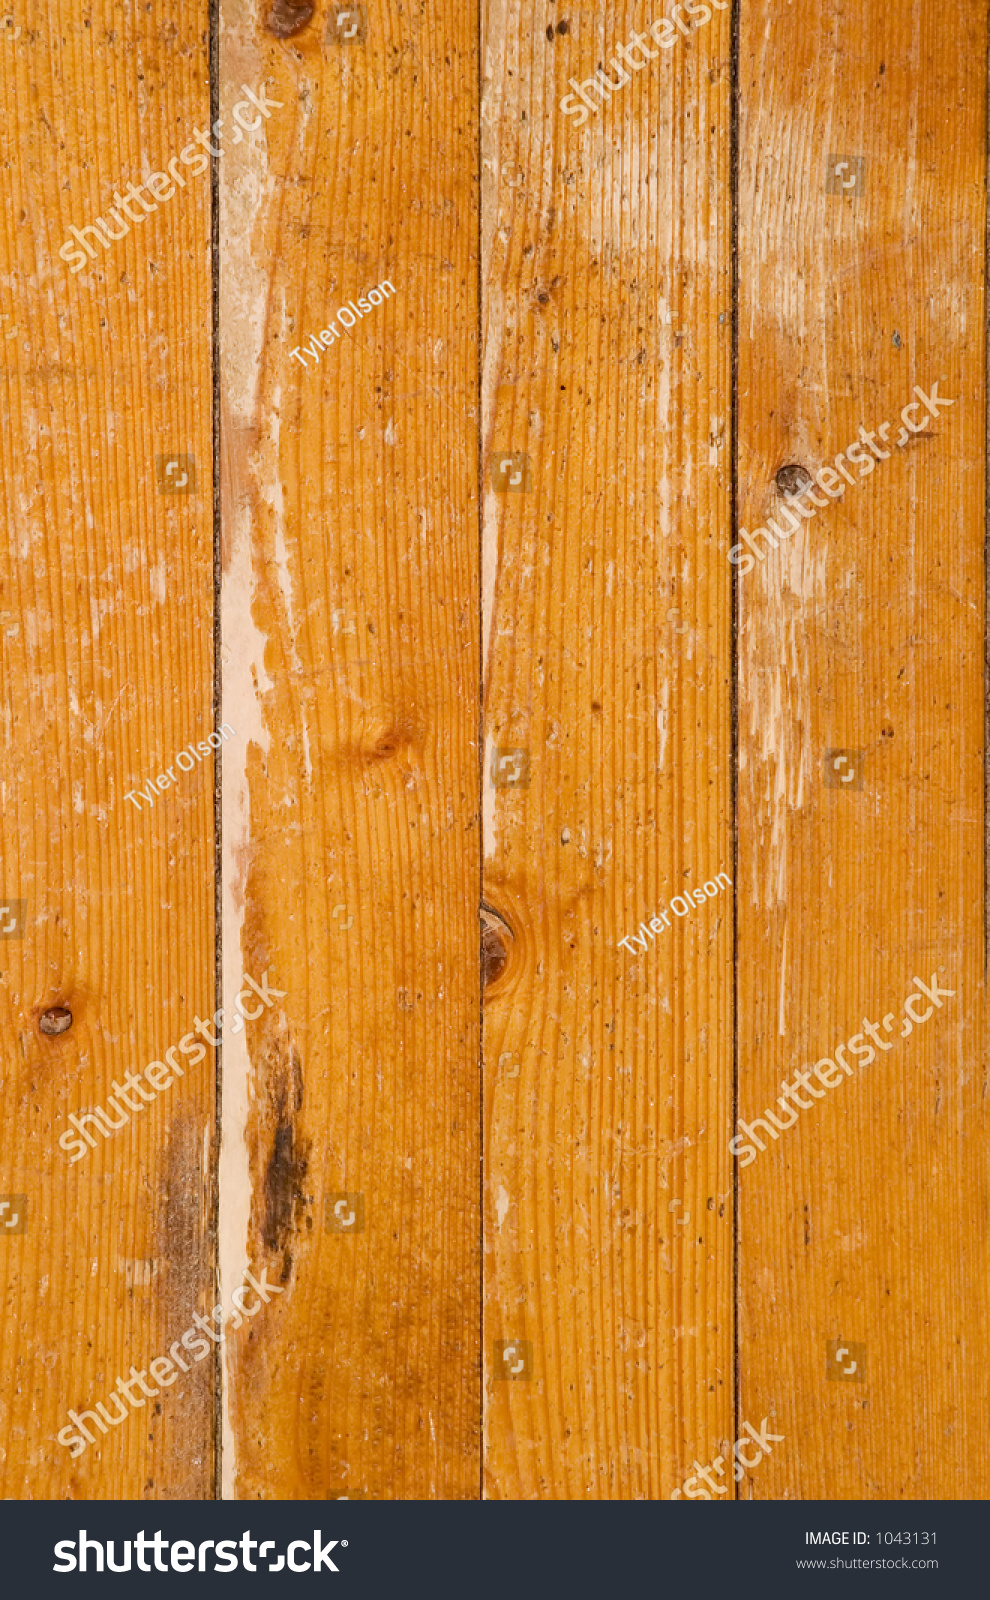 An old worn out hardwood floor texture background image Worn wood floors